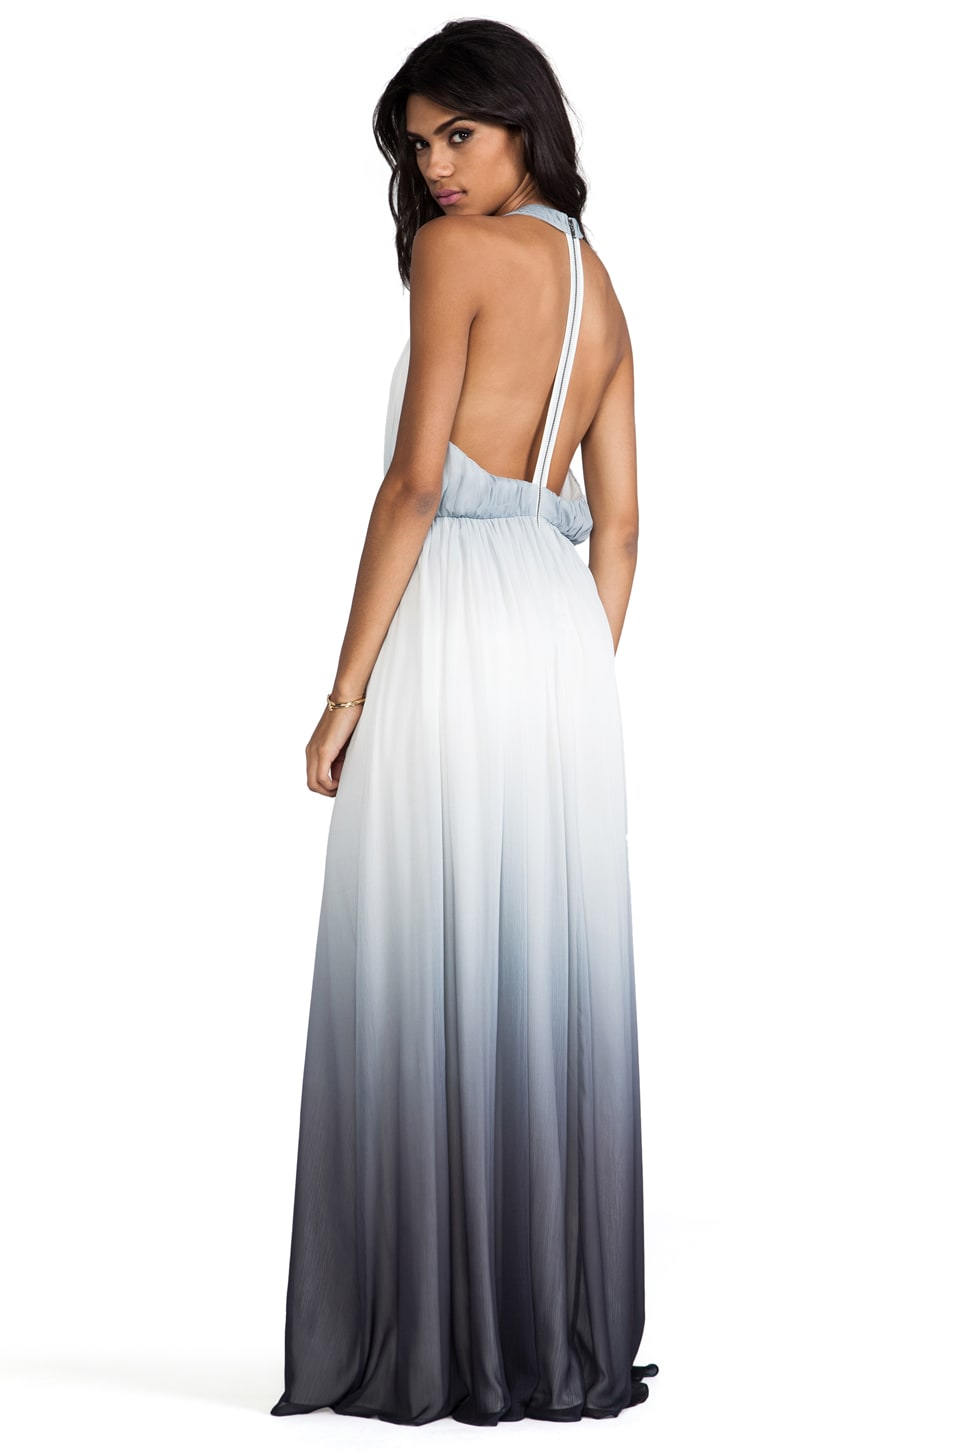 Alice + Olivia Jinny Gathered Sleeveless T-Back Long Dress in Greyscale Ombre